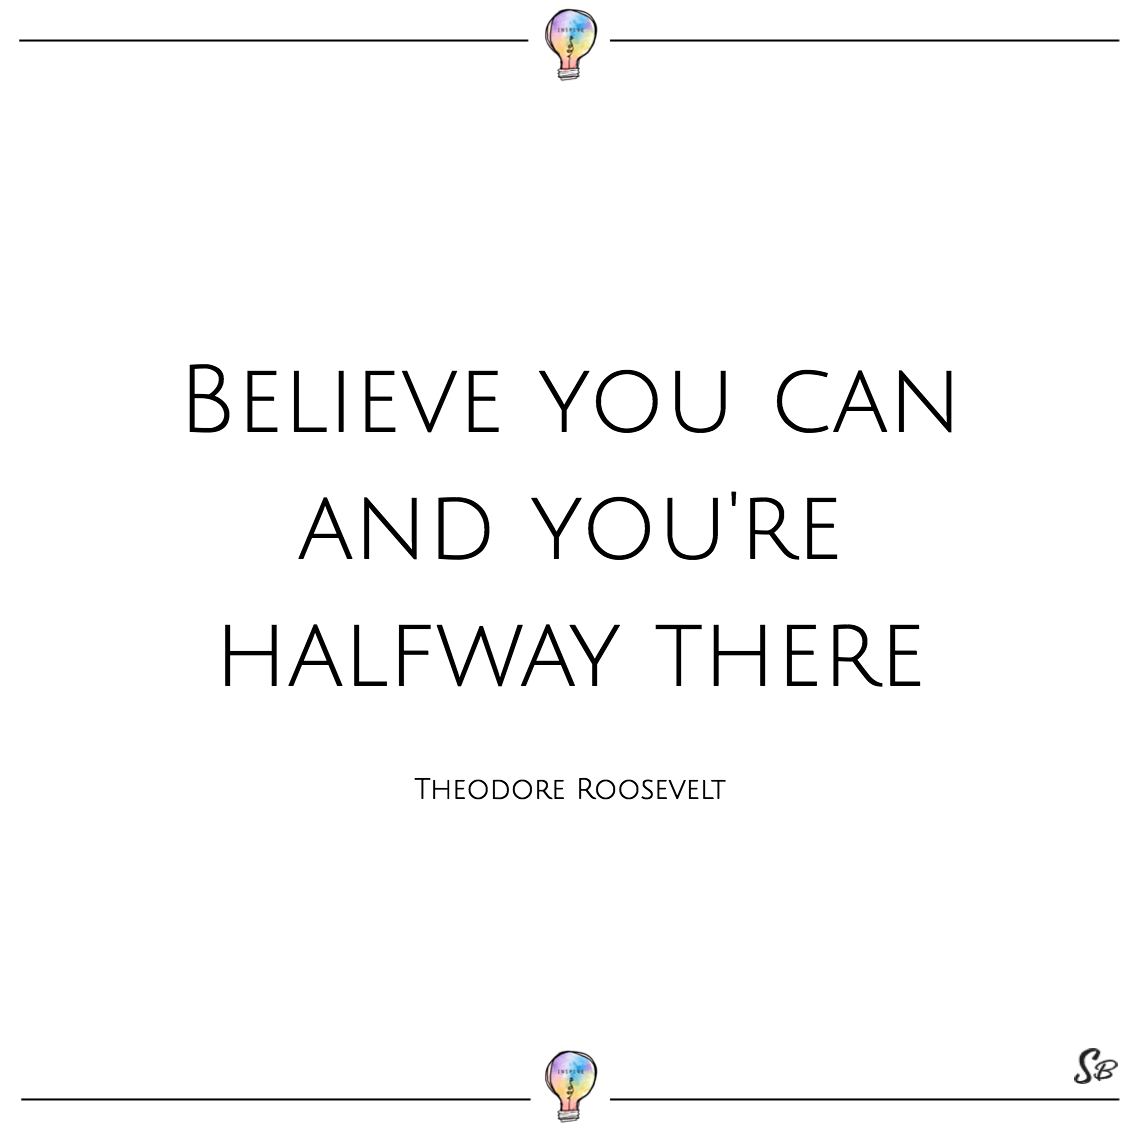 Believe you can and you're halfway there theodore roosevelt